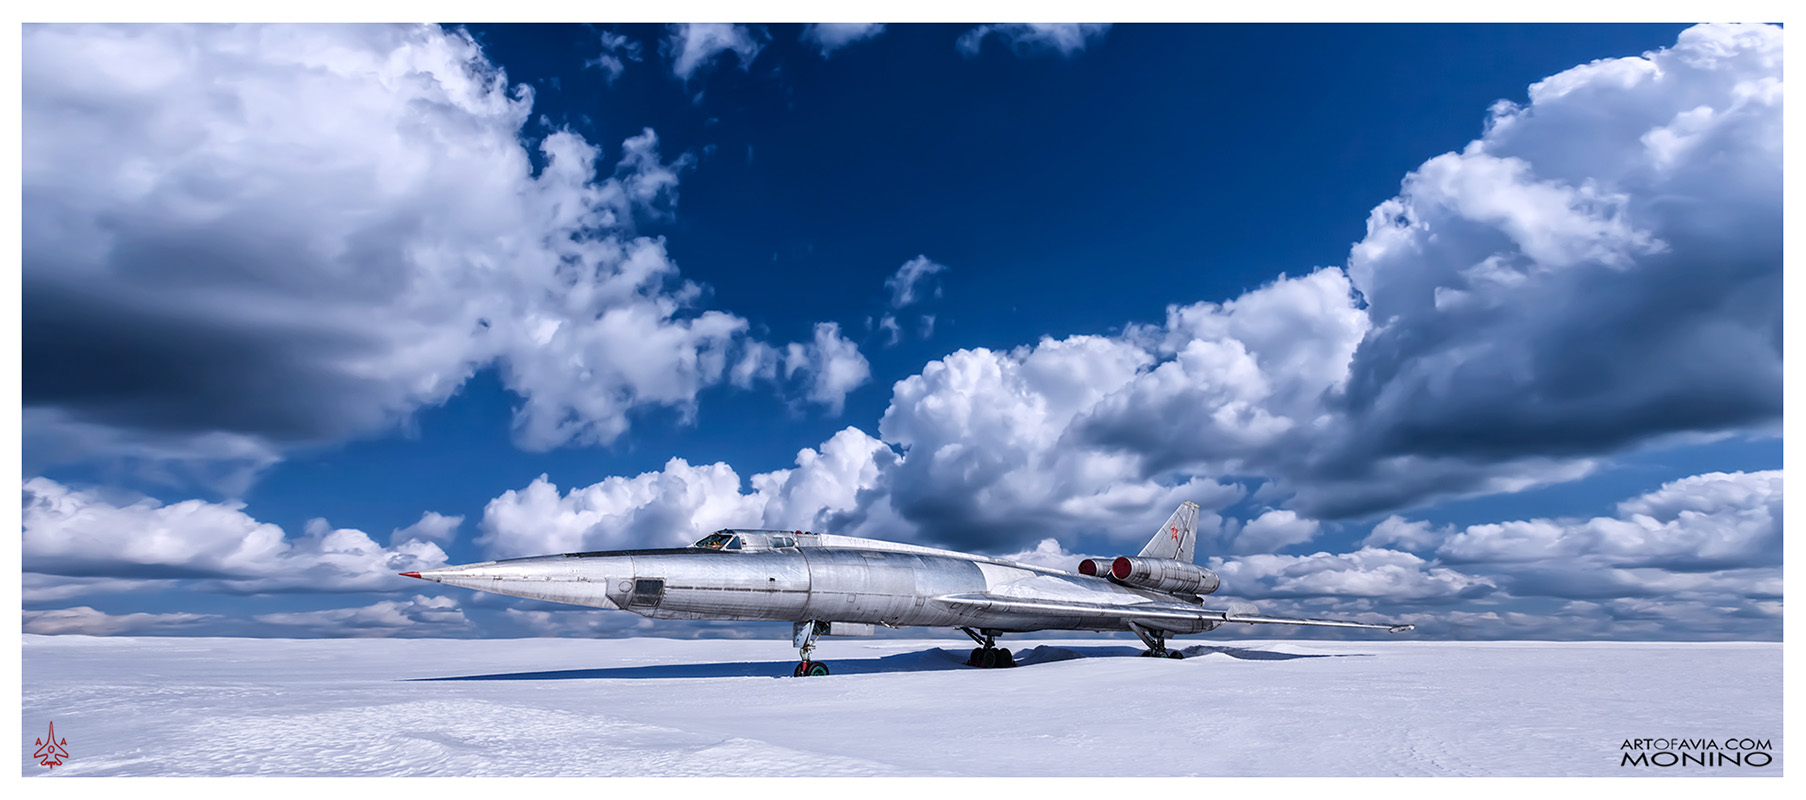 Tupolev-Tu-22-Art-of-Avia-Central-Air-Force-Museum-Monino-by-Kent-Miklenda-800pxh-21-9-IL-A-BW.jpg